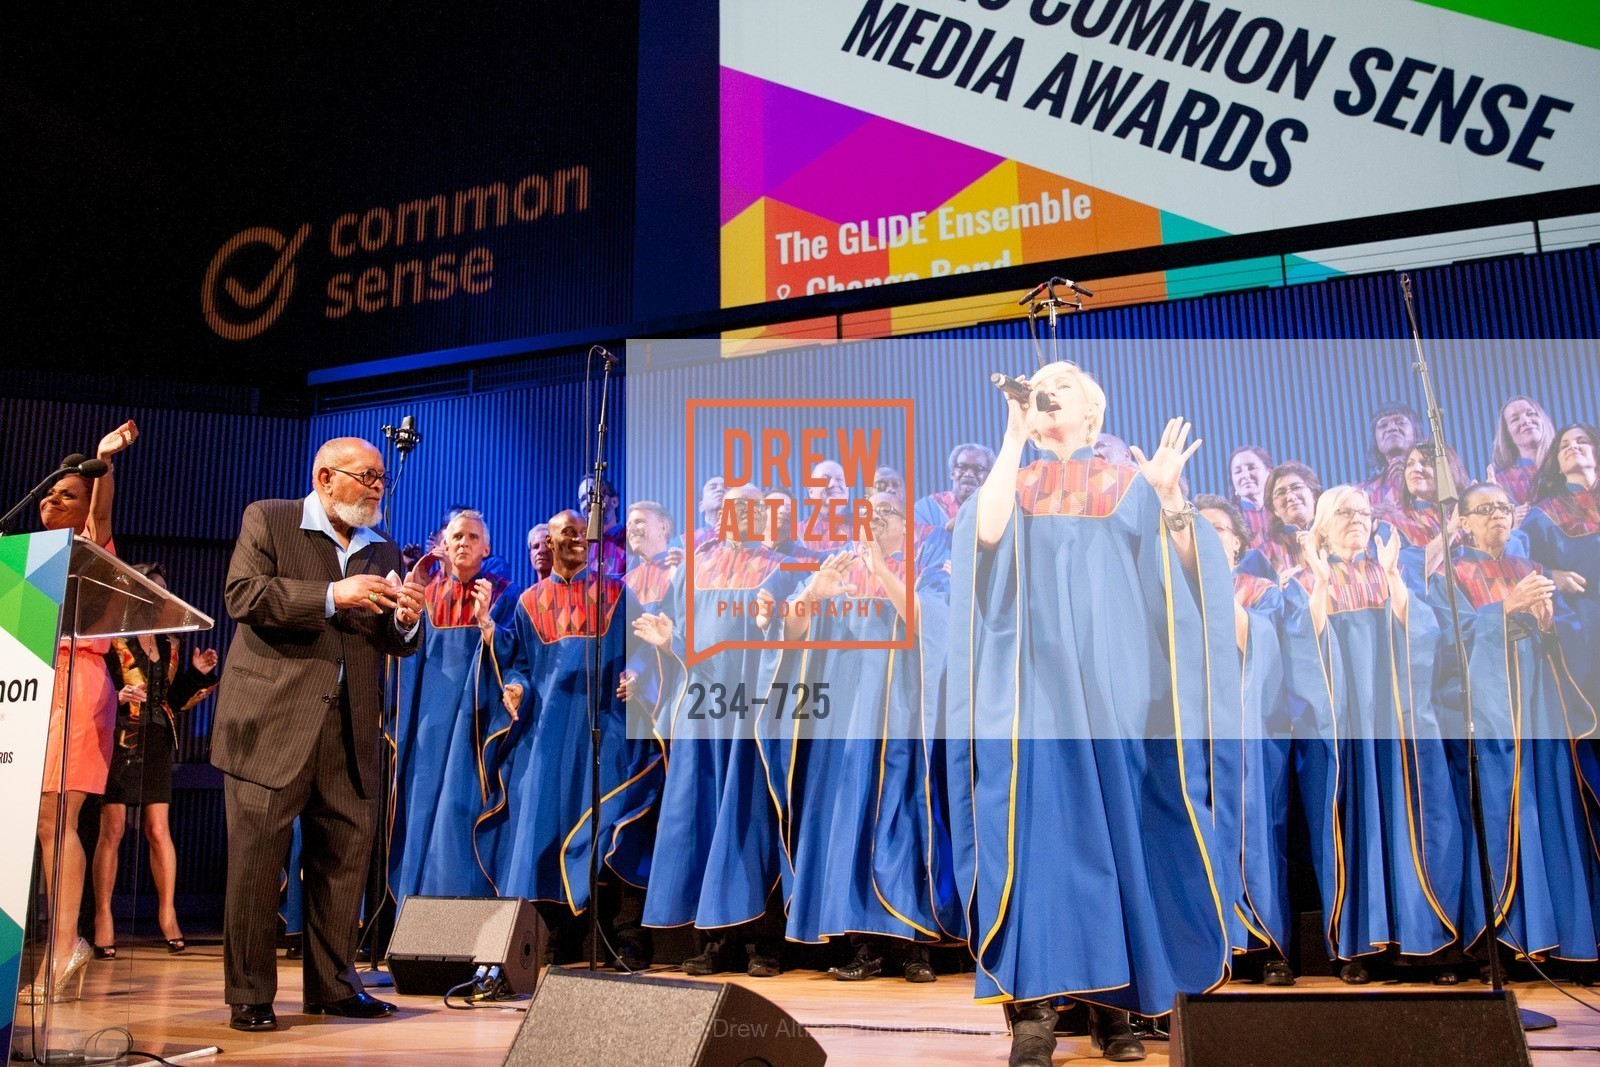 Performance, COMMON SENSE Media Awards 2015, US, May 14th, 2015,Drew Altizer, Drew Altizer Photography, full-service agency, private events, San Francisco photographer, photographer california